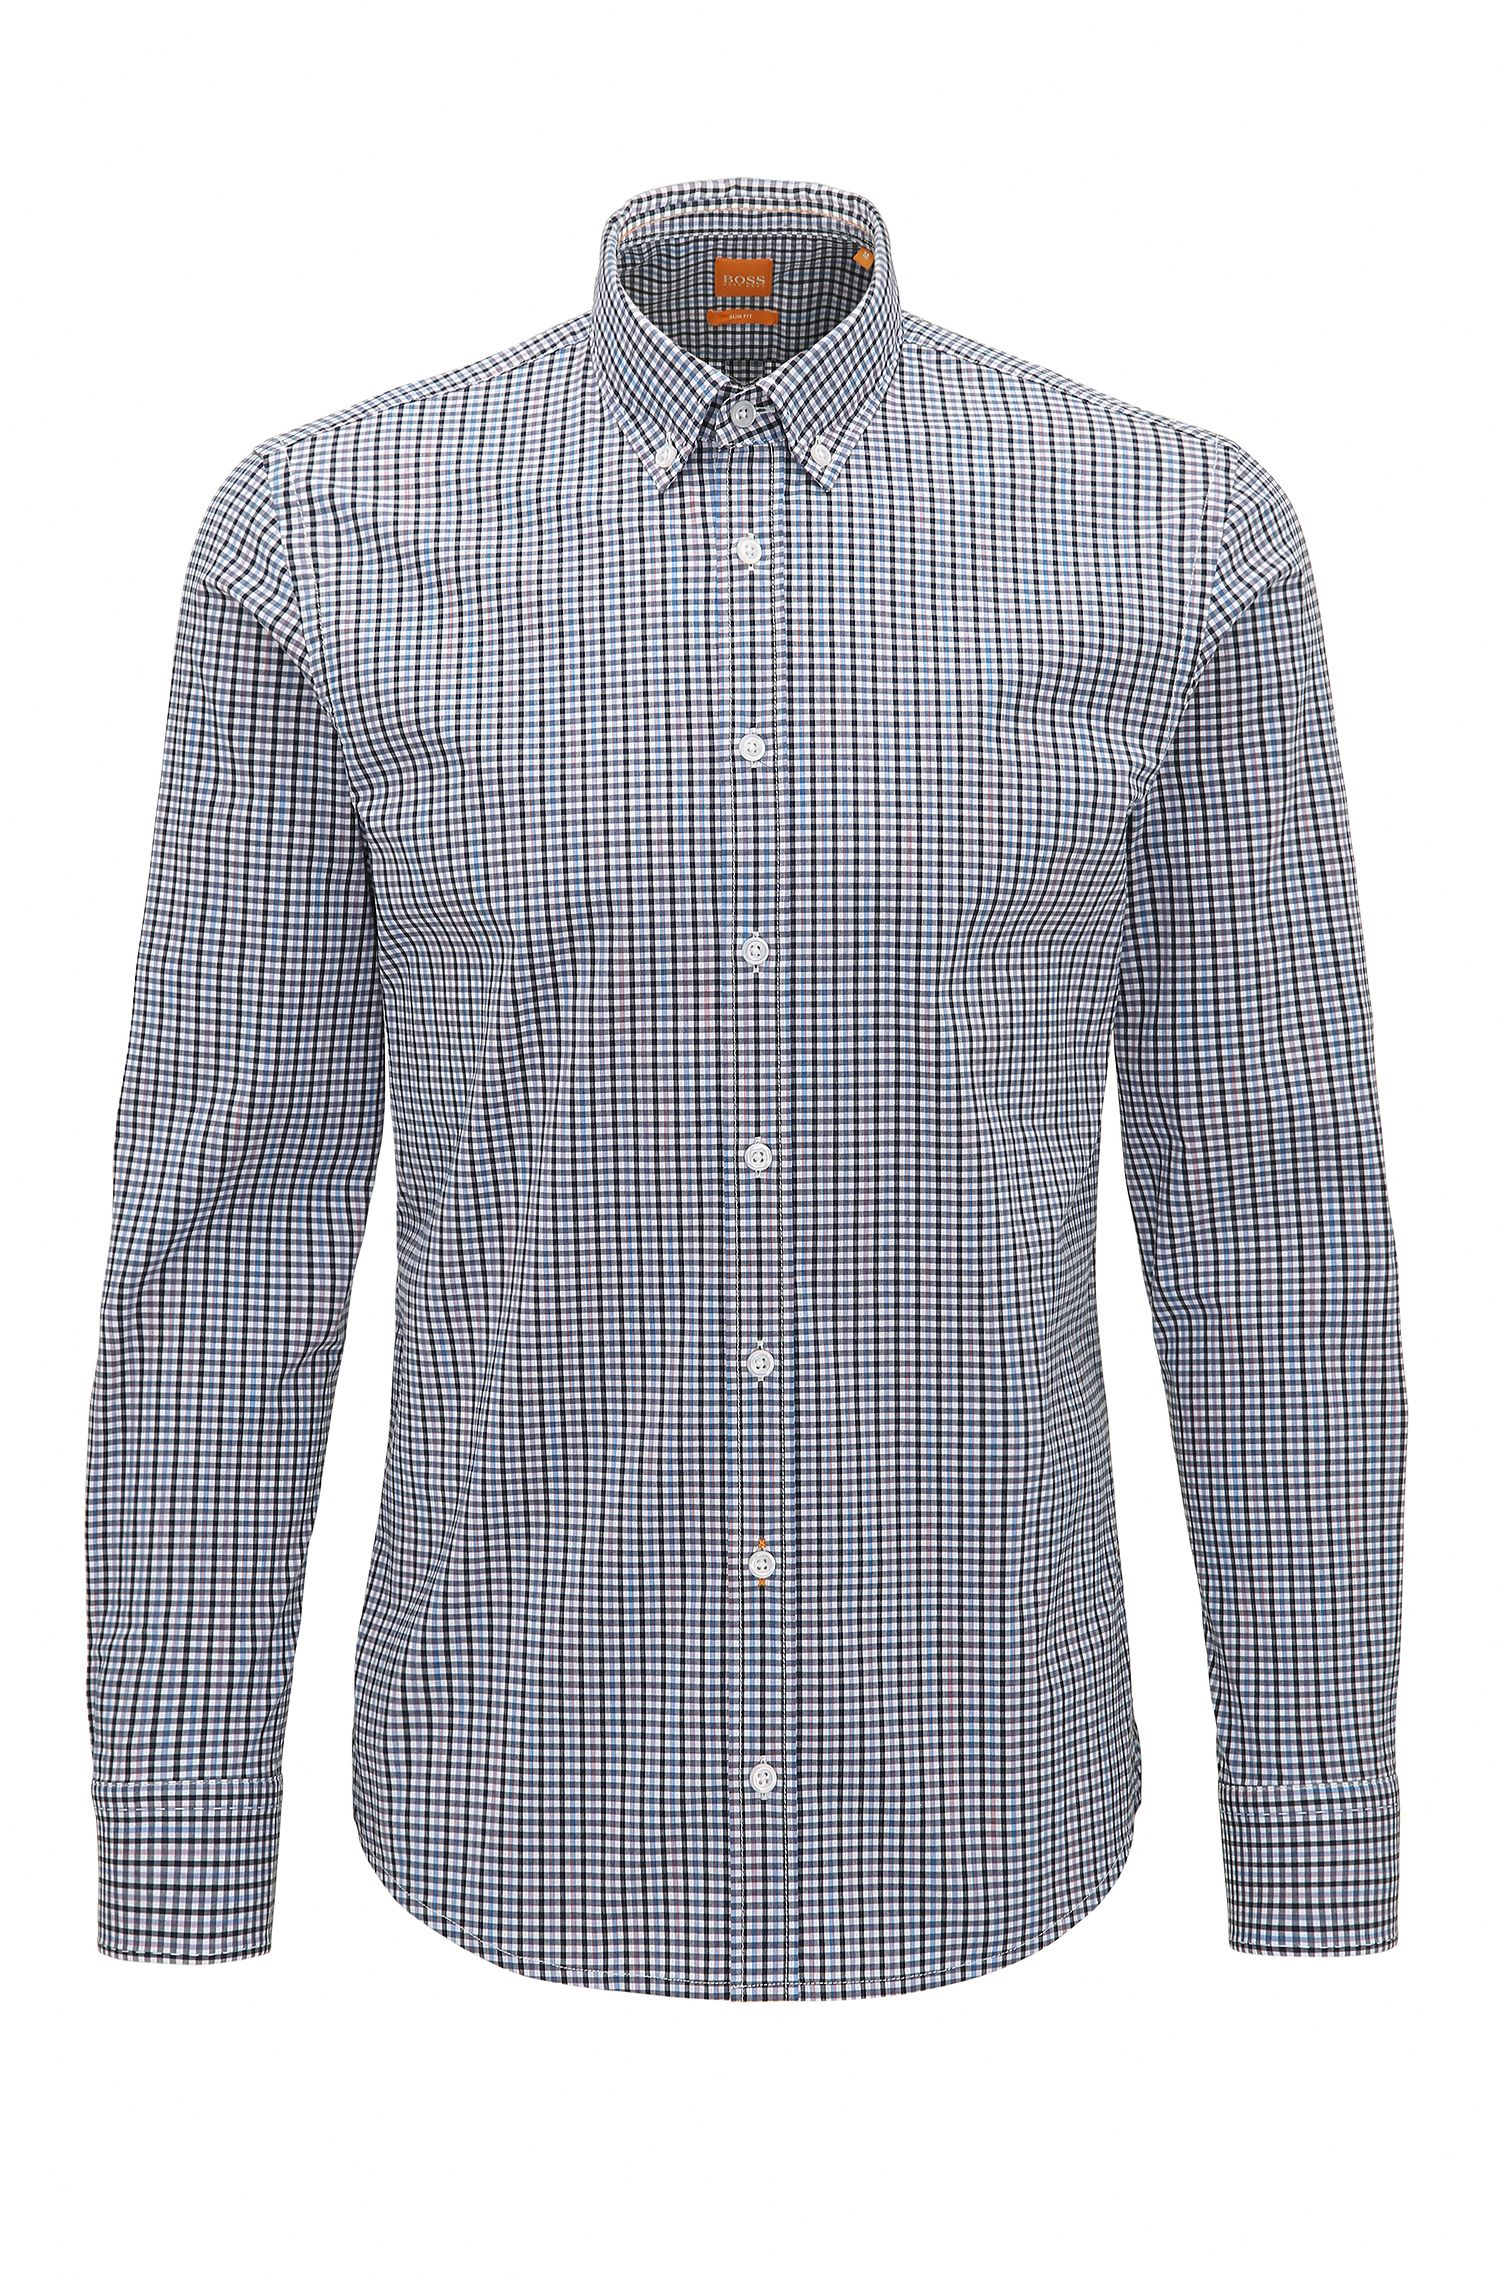 'Epreppy' | Slim Fit, Plaid Stretch Cotton Button-Down Shirt